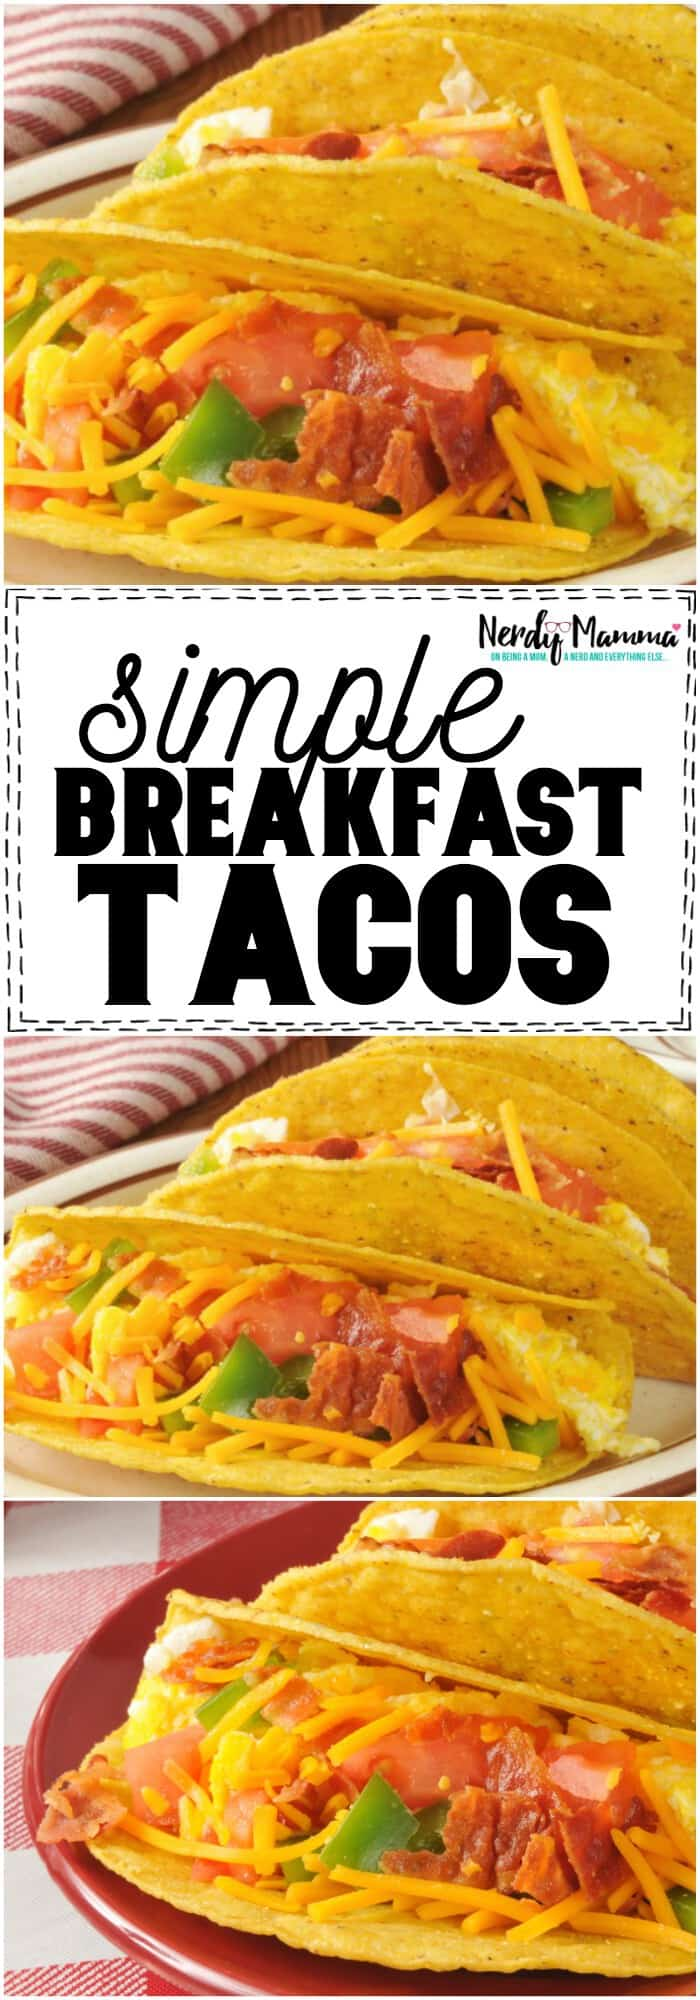 OMG. These simple breakfast tacos are AMAZING. My picky kiddos even eat them, and who doesn't love tacos for BREAKFAST? #yum #tacos #tacotuesday #tacoeveryday #breakfast #breakfastrecipe